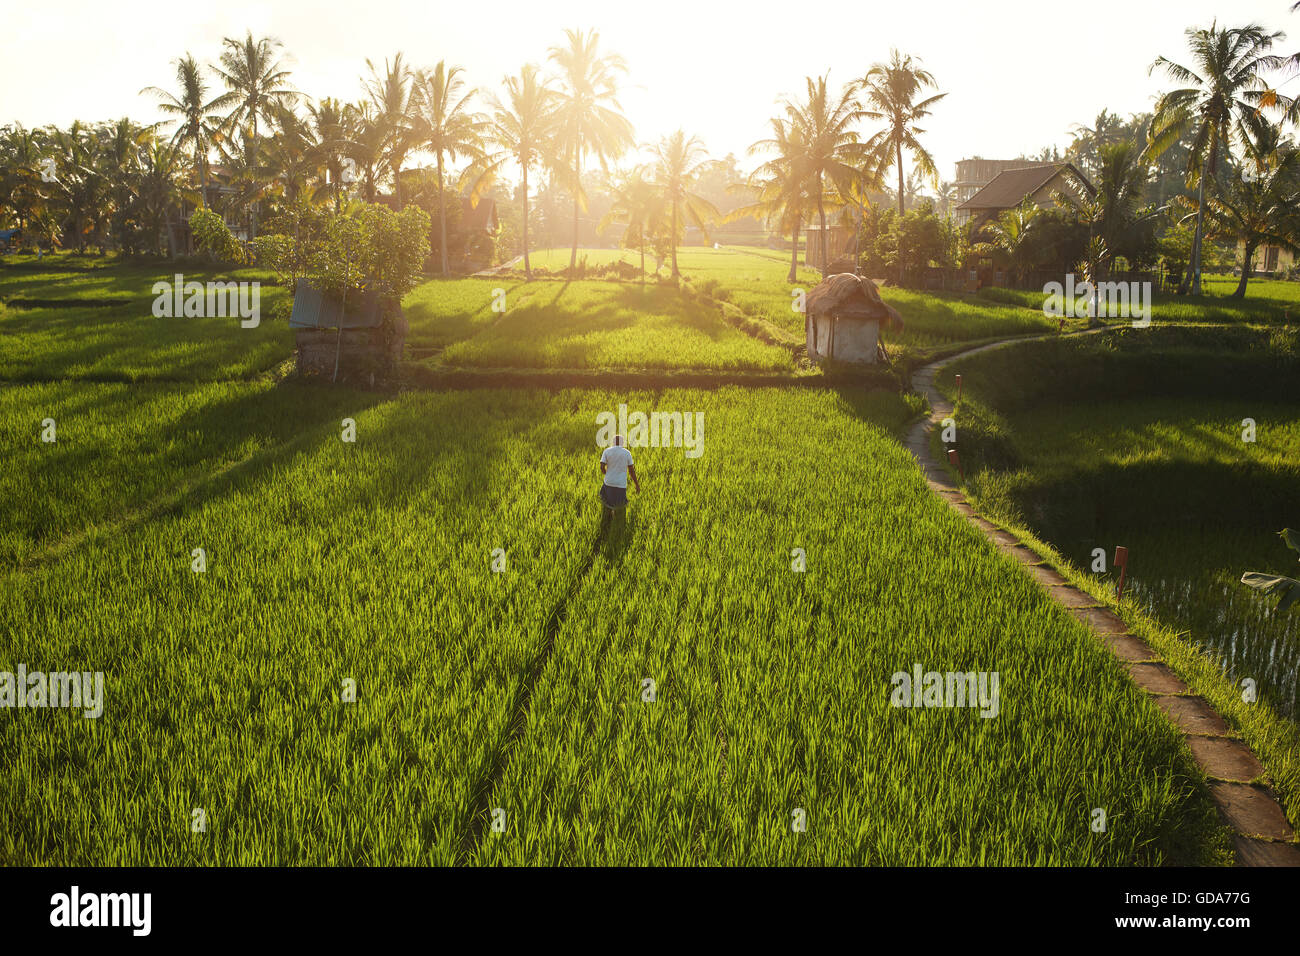 Beautiful view of farm lands with trees on a bright sunny day - Stock Image